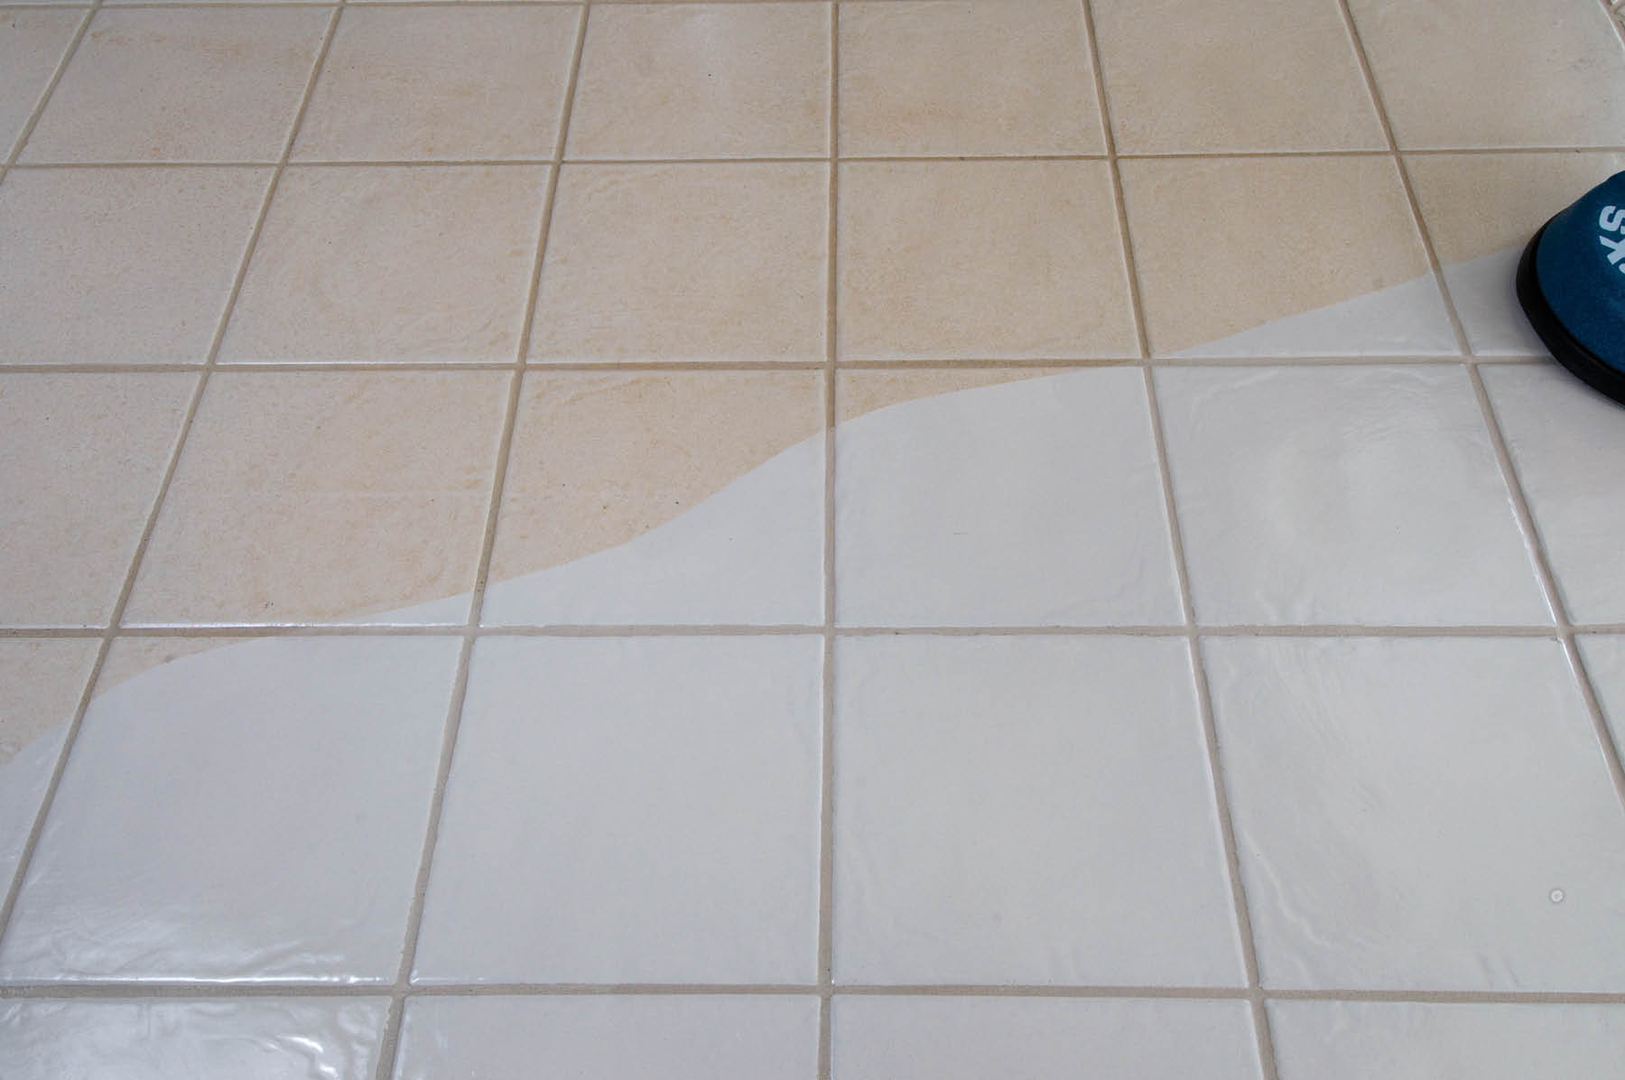 Avoid Health Risks With Regular Tile & Grout Cleaning - Pioneer ...